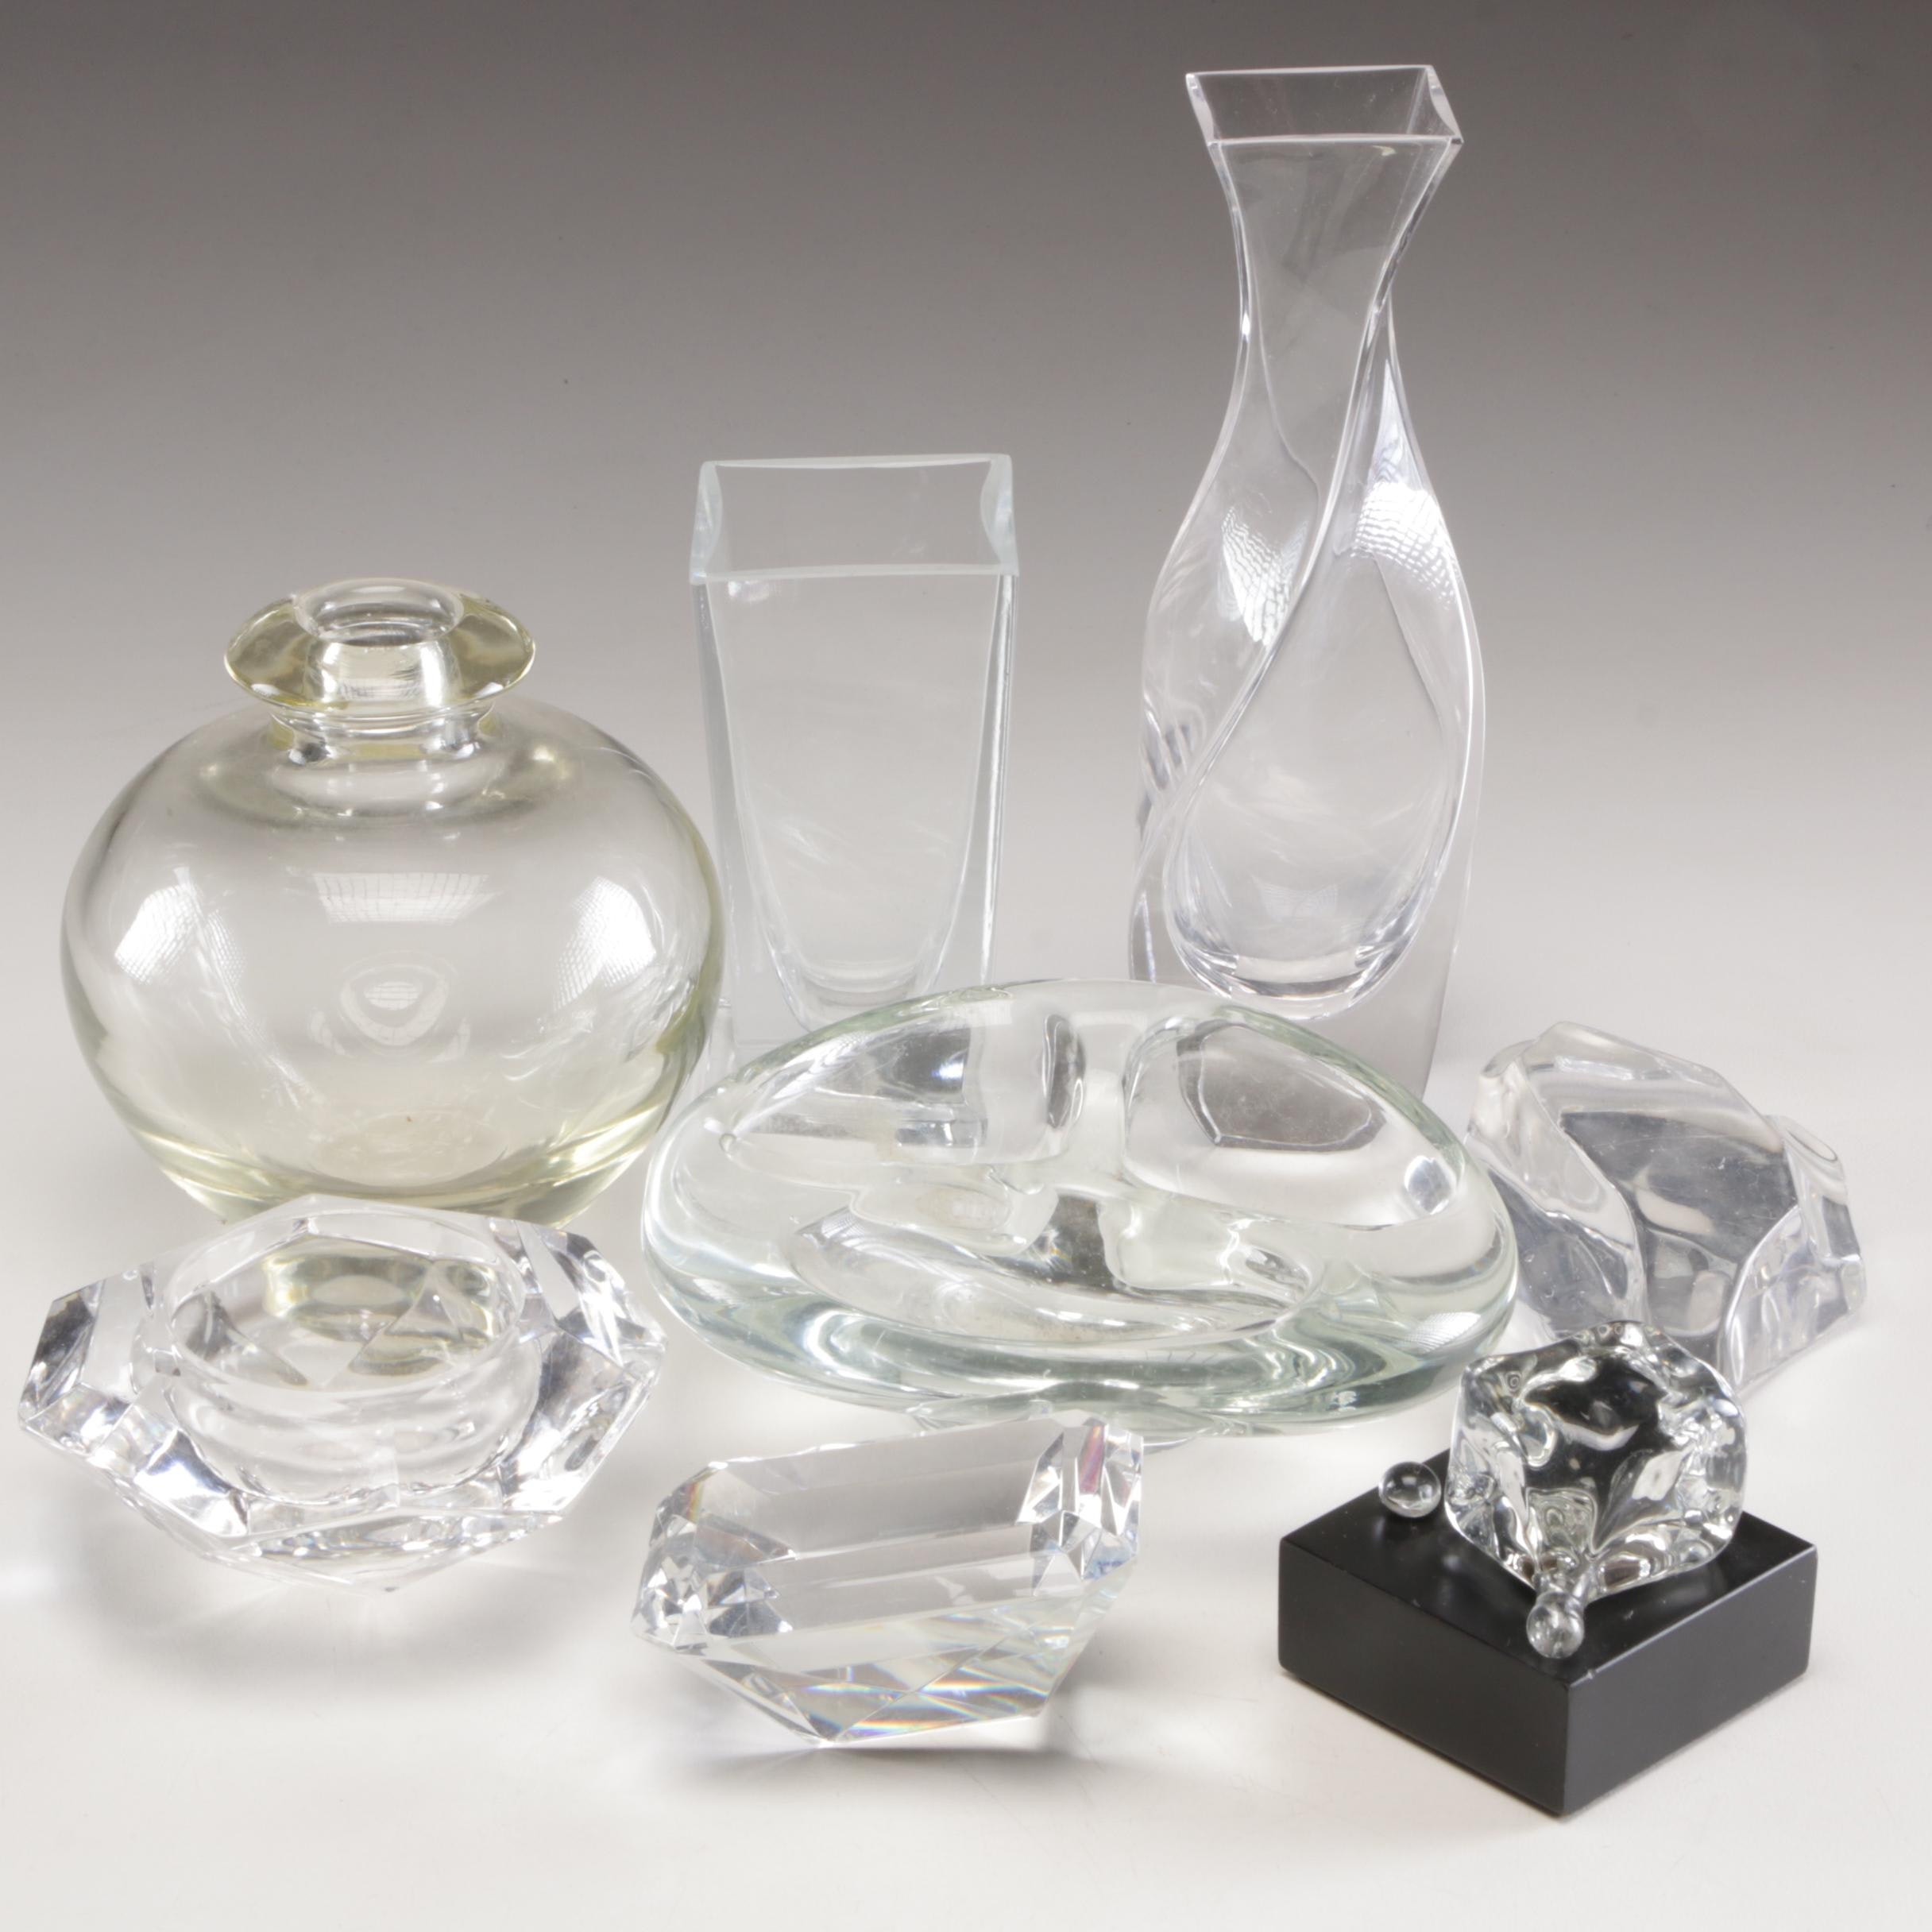 Glass Vases, Bowls, and Decor